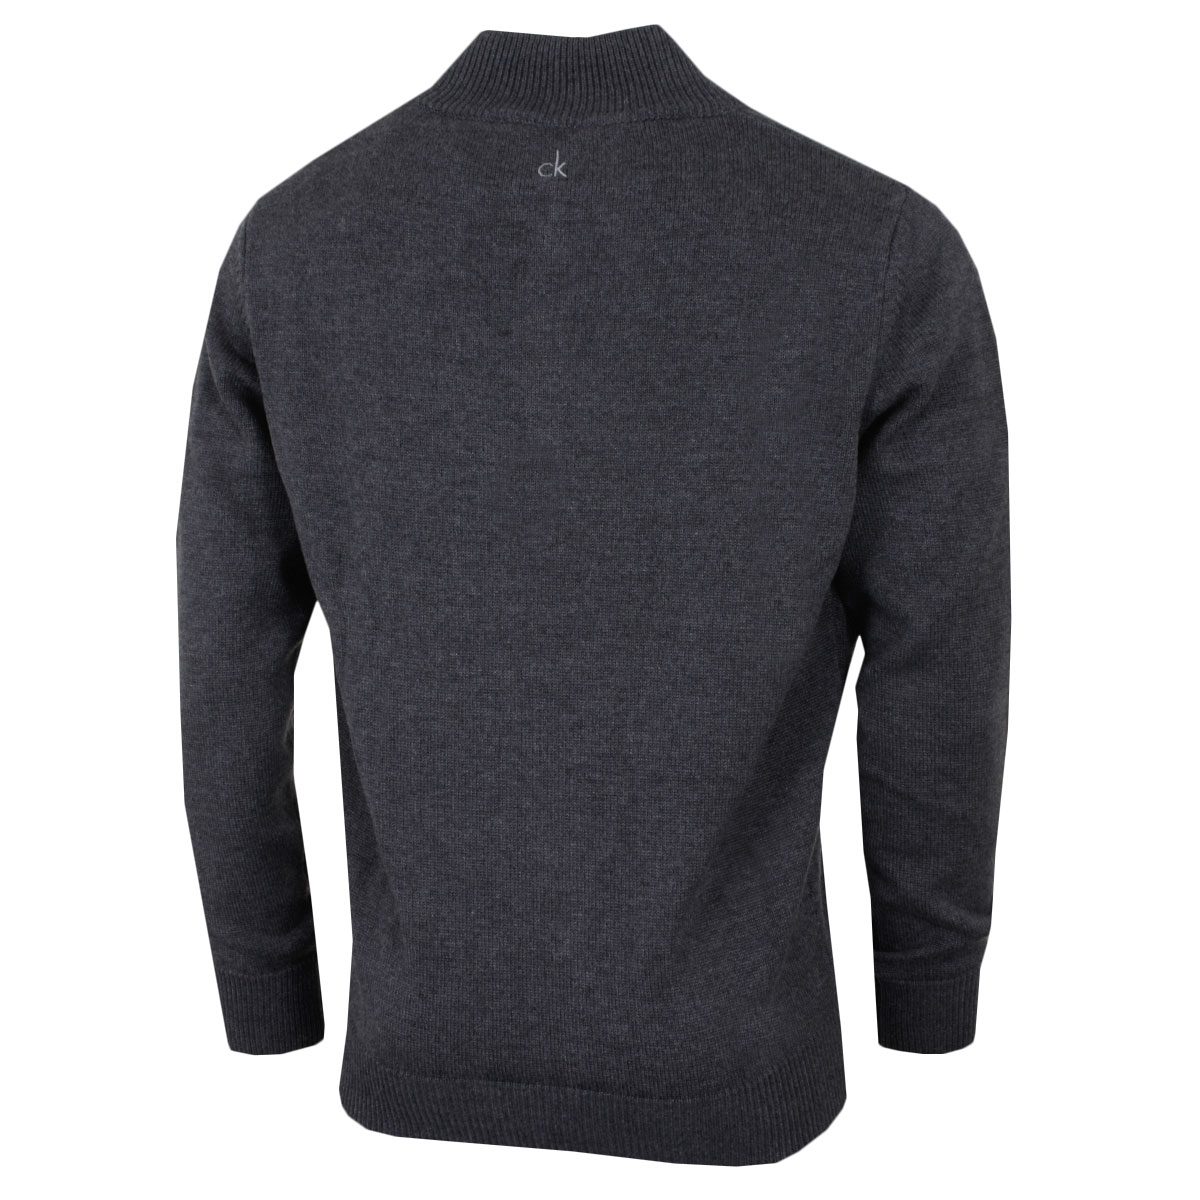 Calvin-Klein-Golf-Mens-2019-Chunky-Cotton-1-2-Zip-Golf-Top-Sweater-28-OFF-RRP thumbnail 21